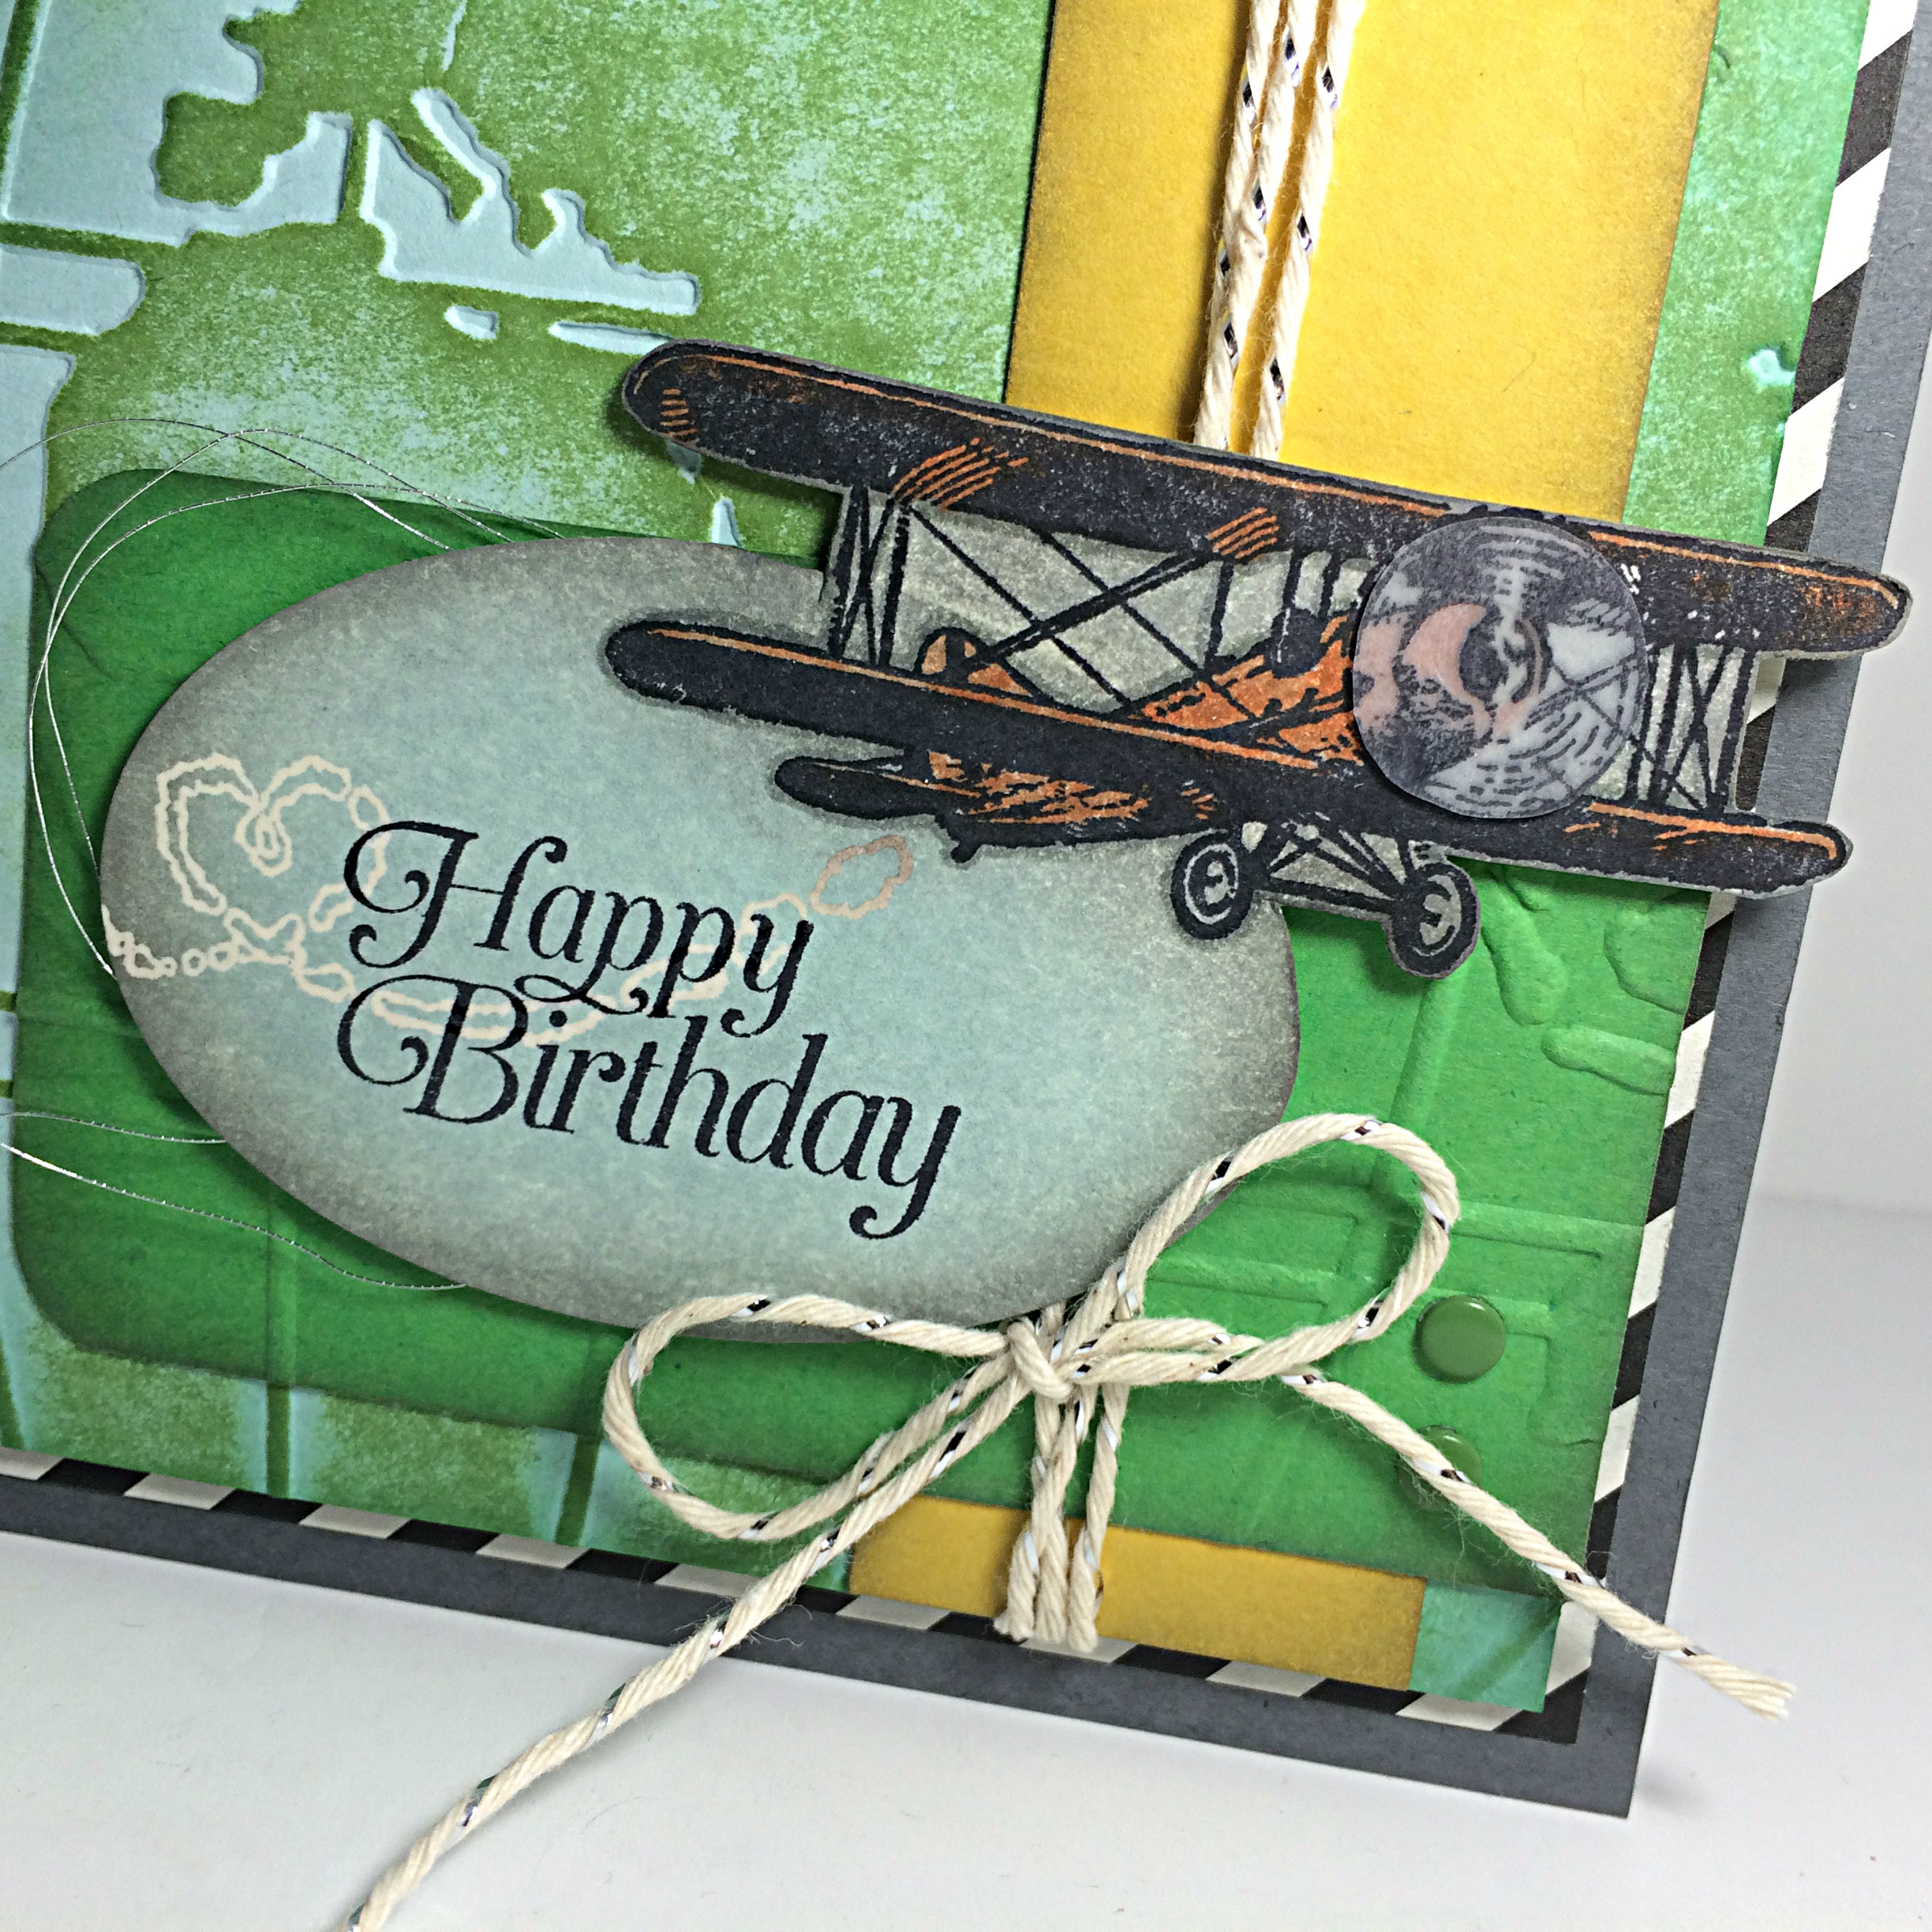 Soaring Birthday by Amy Jasper www.inkingonthefly.com Sky is the Limit from Stampin' Up! #AYSI119